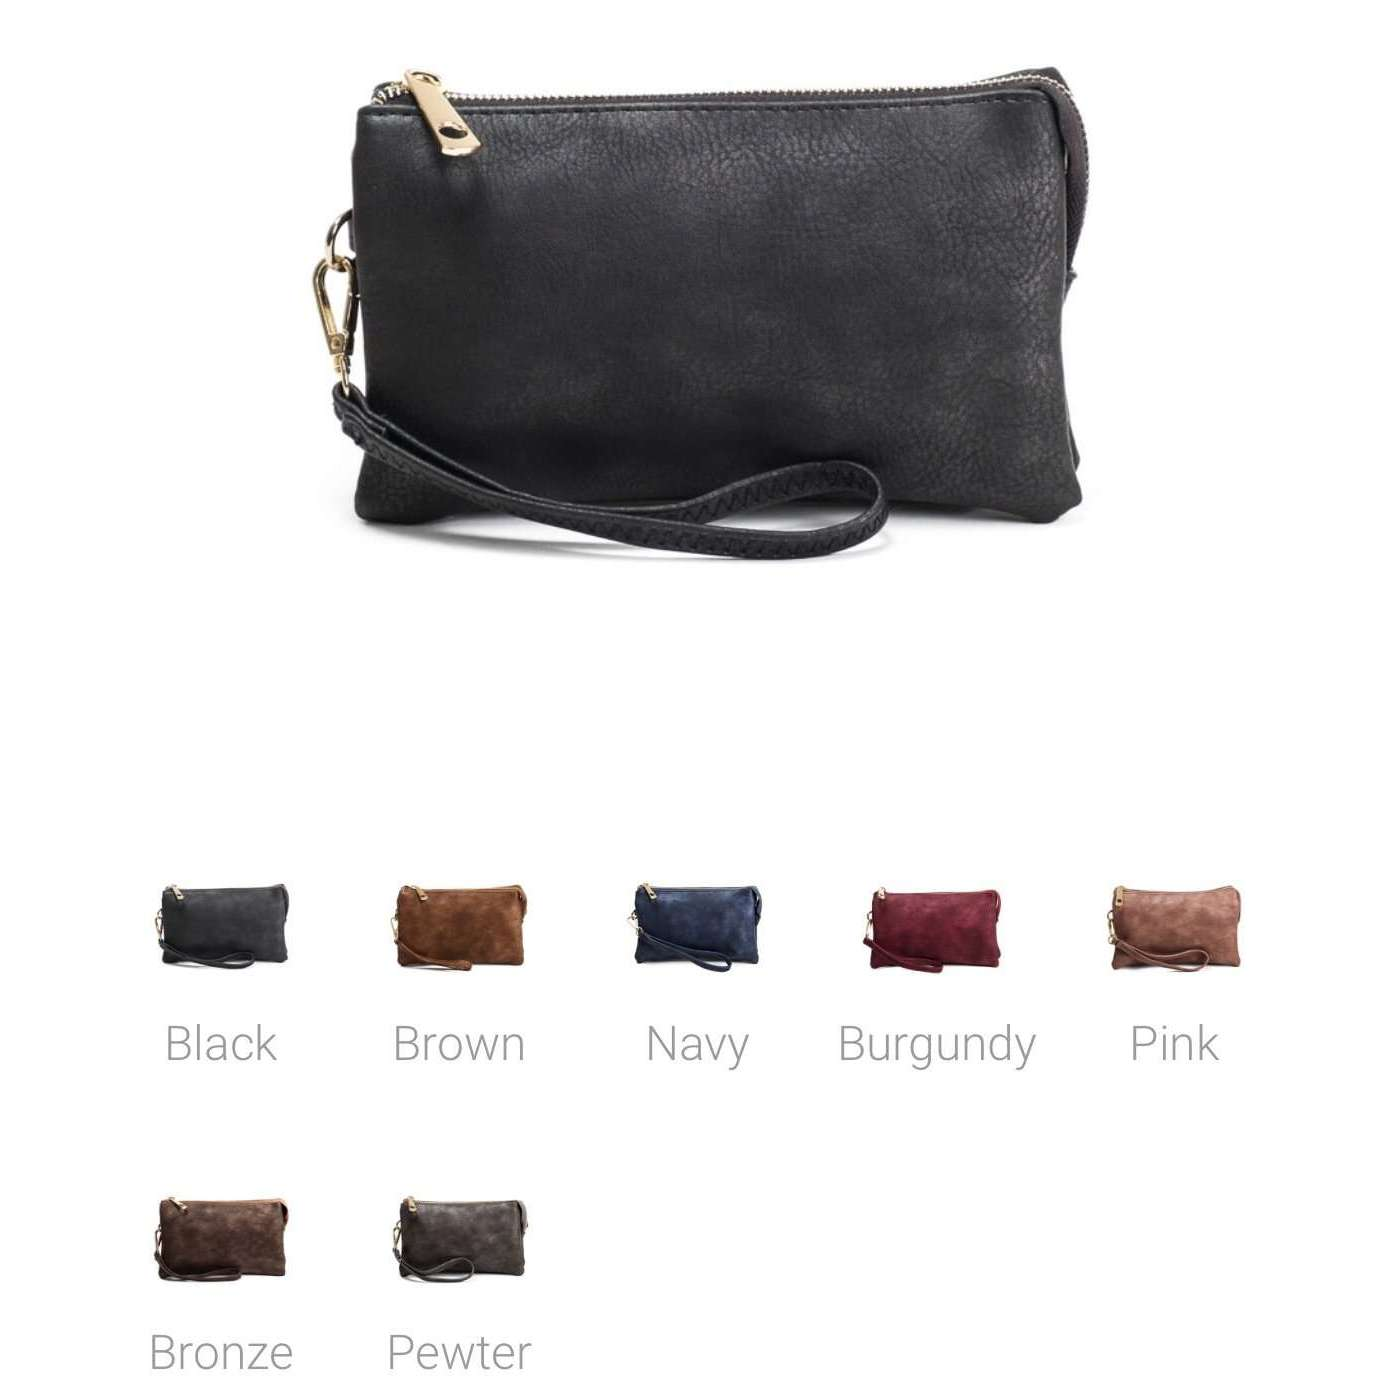 NYC 3 Compartment Wristlet Crossbody